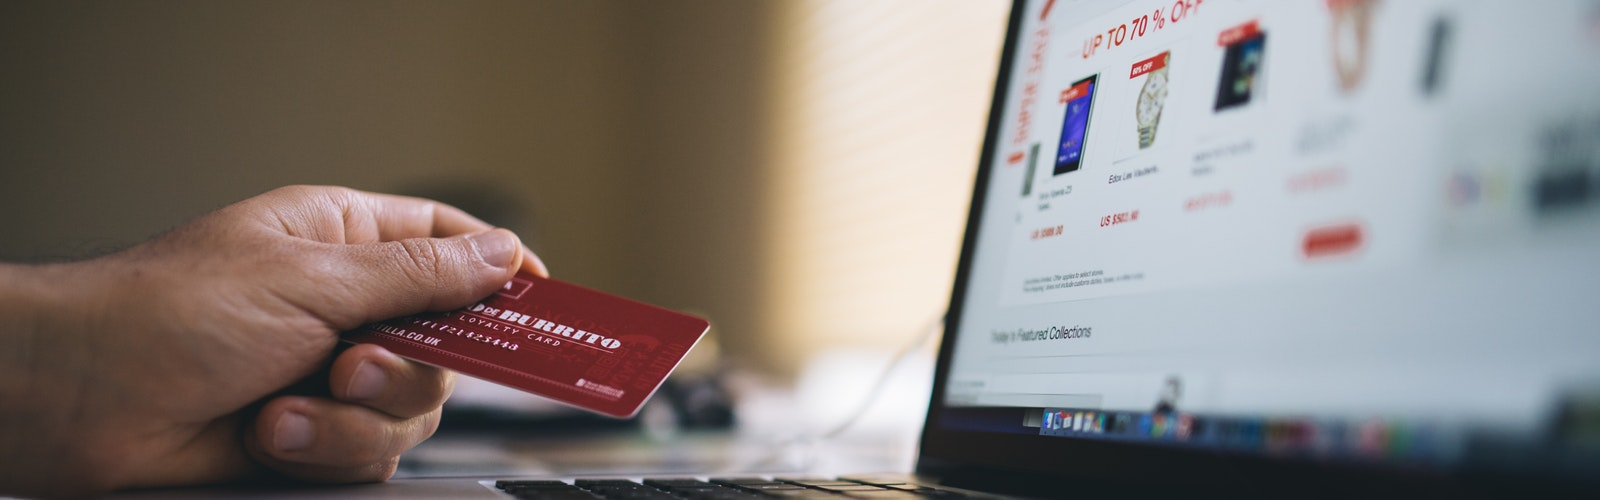 Is your ecommerce site ready for the new online shopping payment rules?